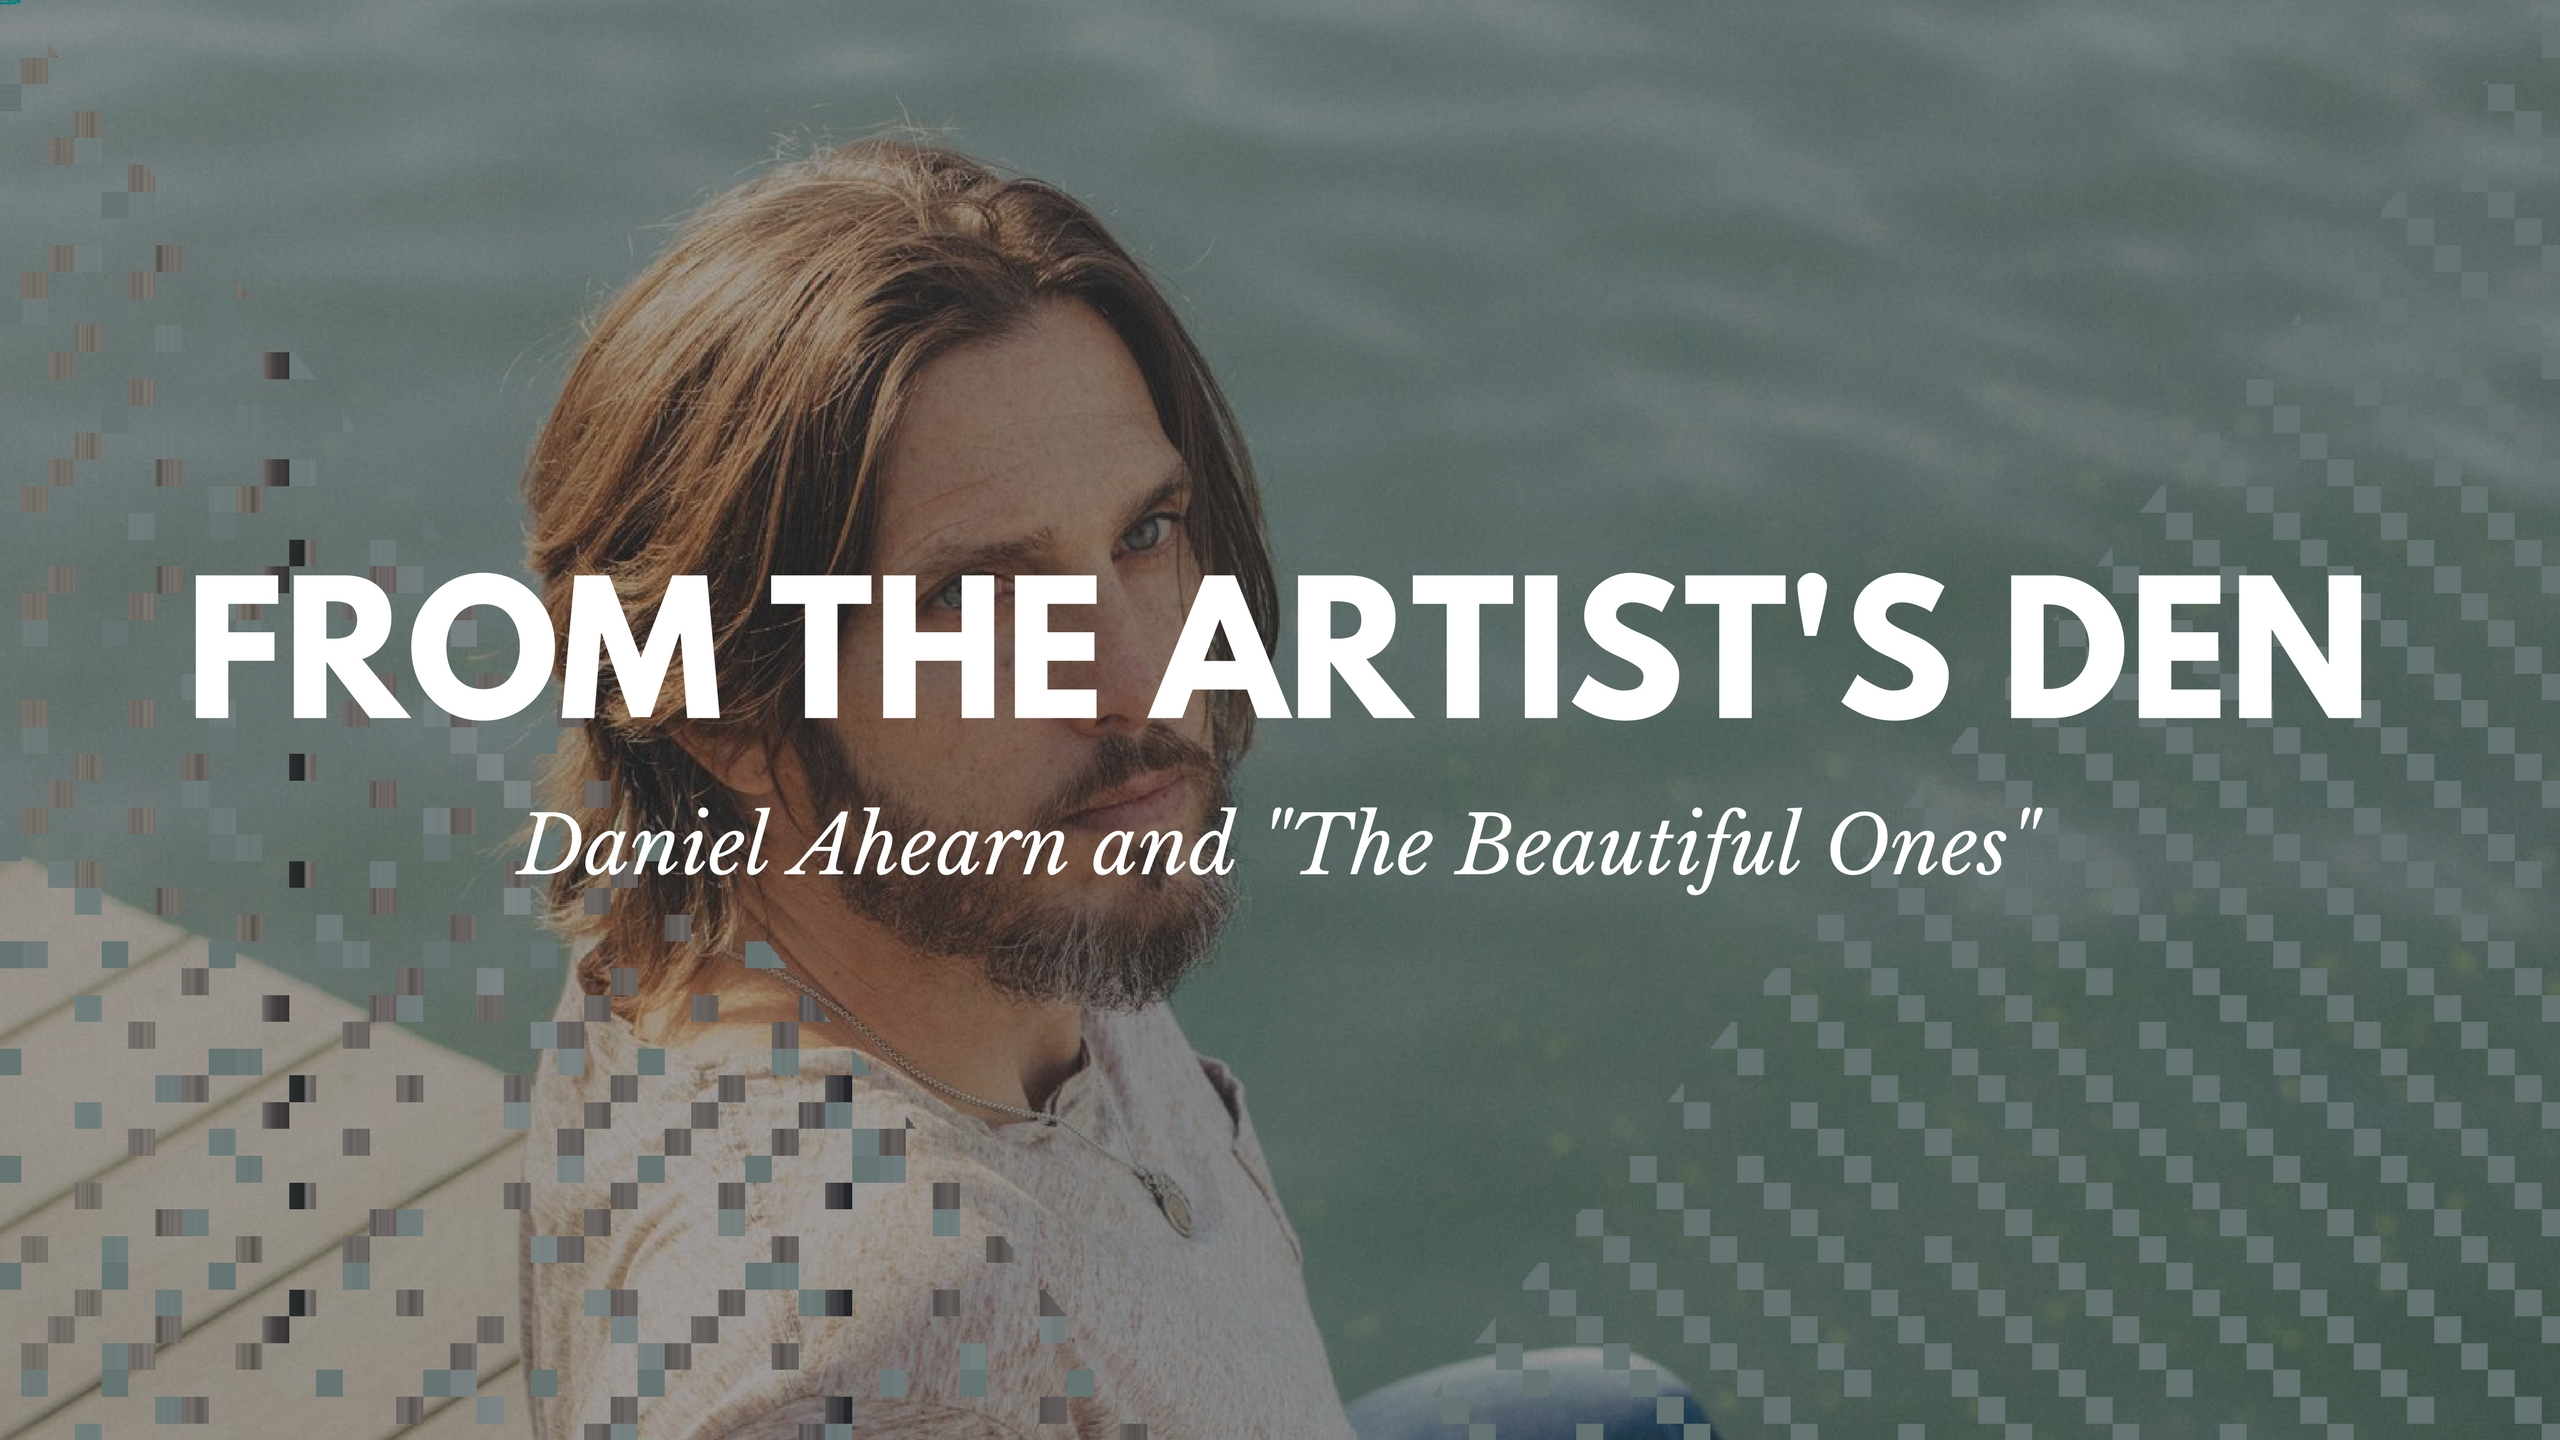 from the artist's den-daniel ahearn-and-the beautiful ones-indie music-new music-indie folk-singer songwriter-style-lifestyle-USA-musica-musica nueva-estilo-moda-fashion-style by nomads-stylebynomads